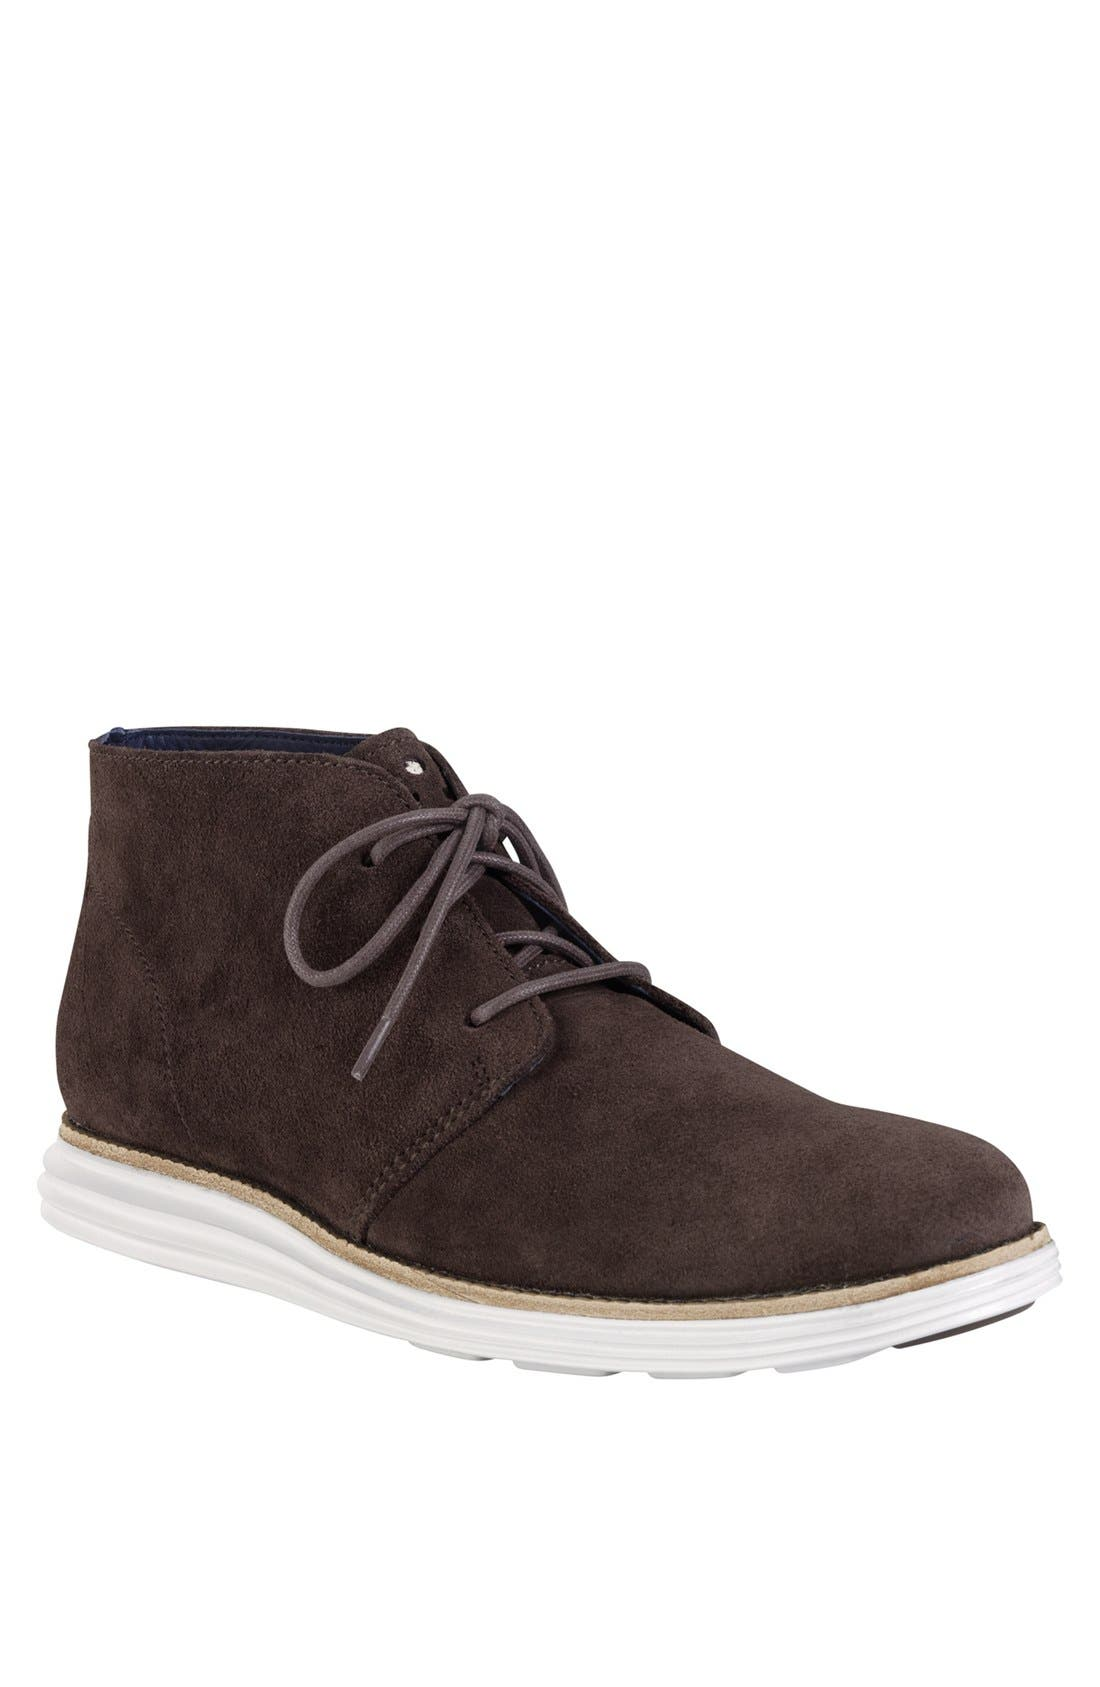 Alternate Image 1 Selected - Cole Haan 'LunarGrand' Chukka Boot   (Men)